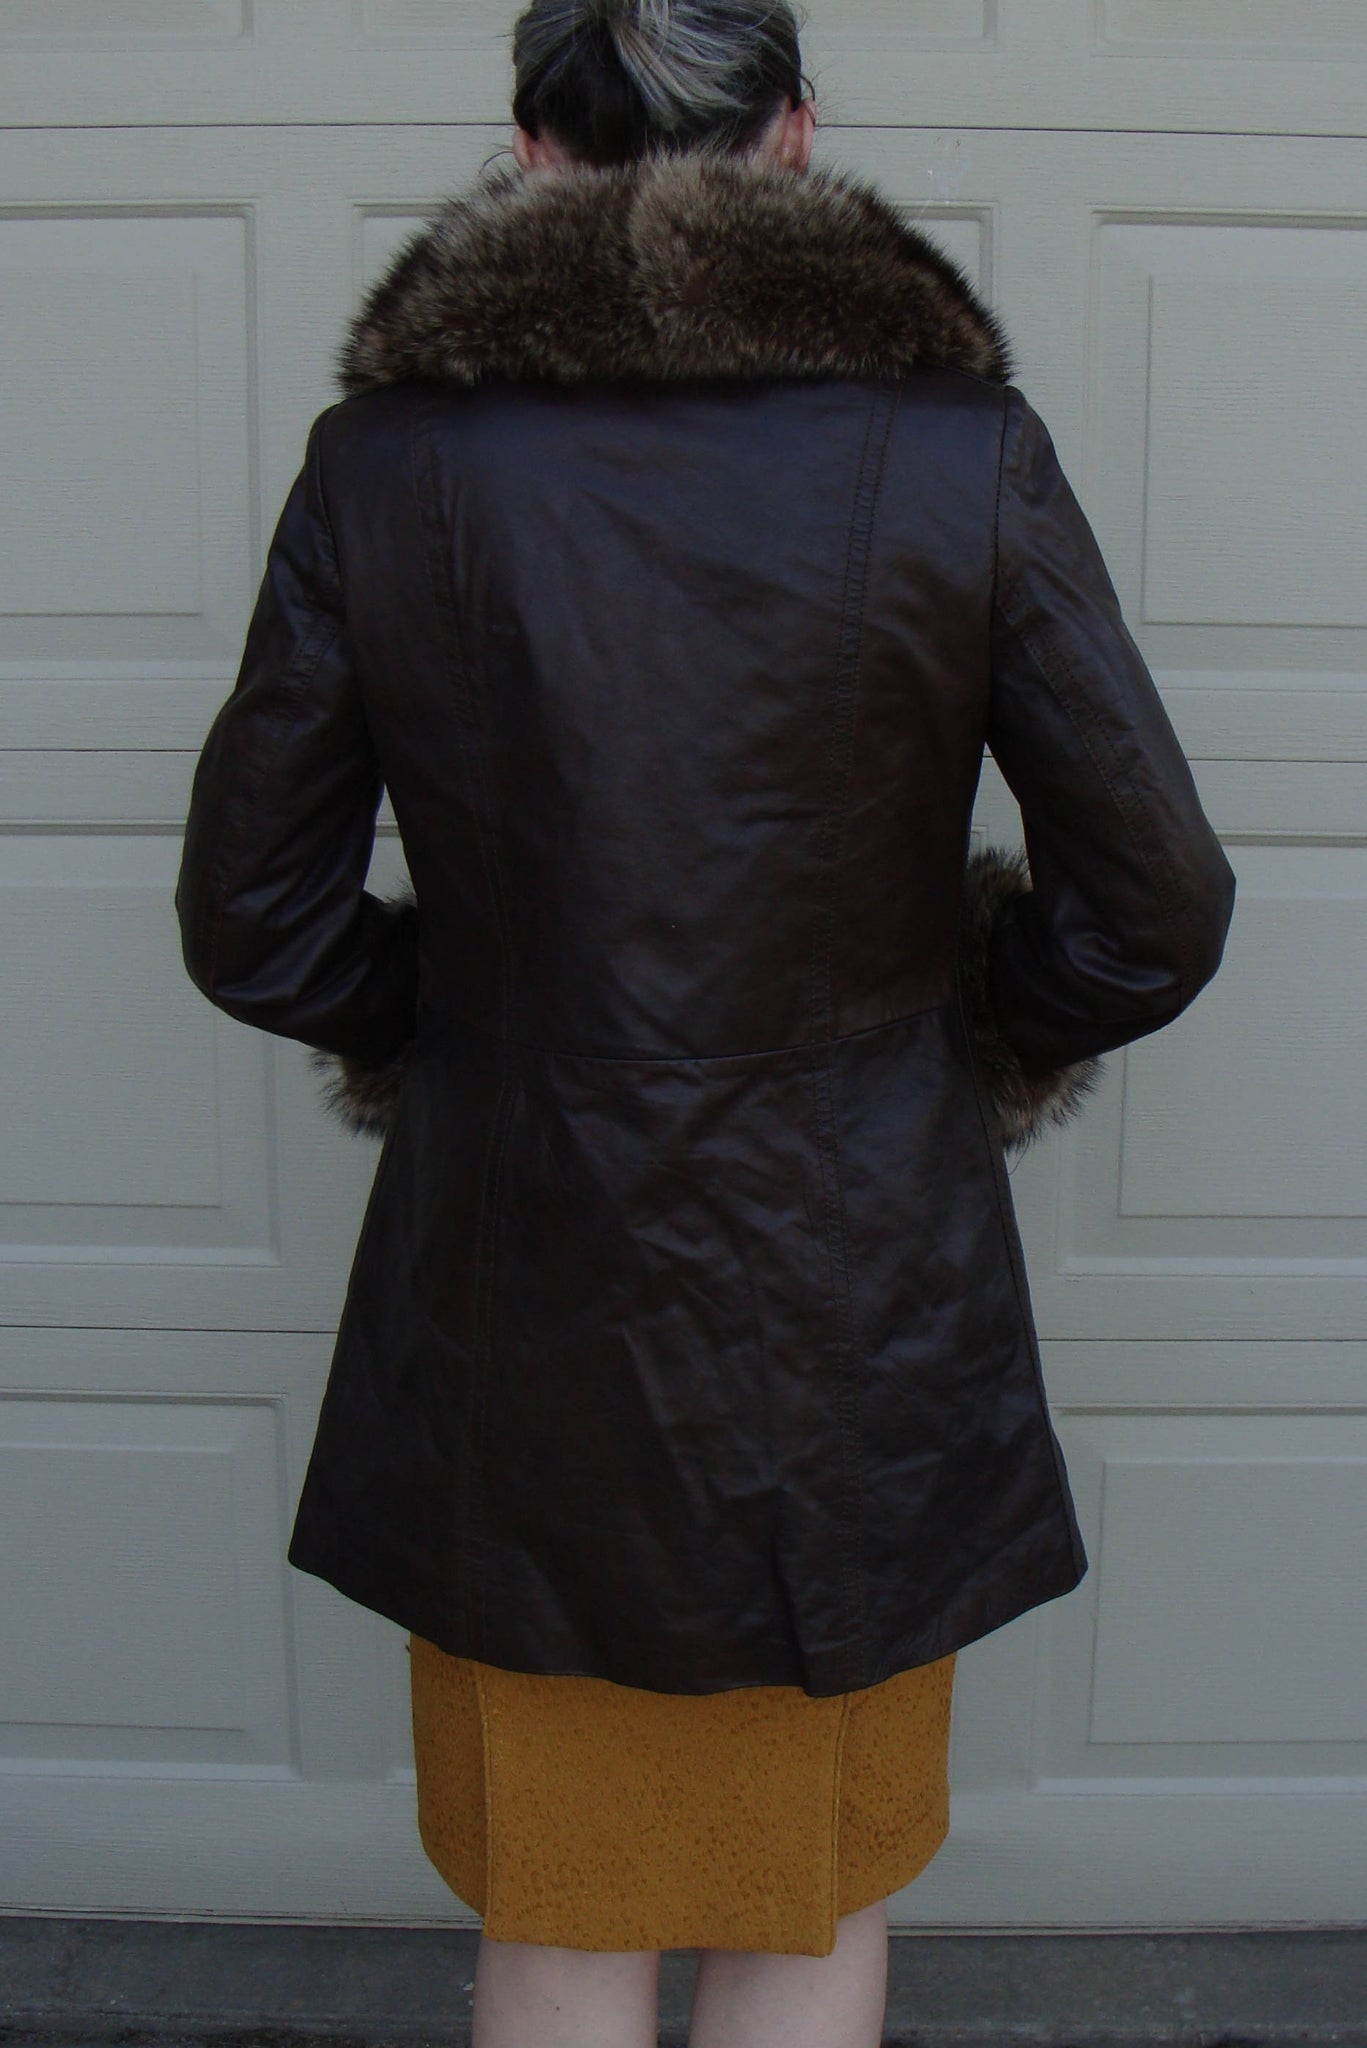 BROWN LEATHER COAT with fur collar and cuffs metal closures